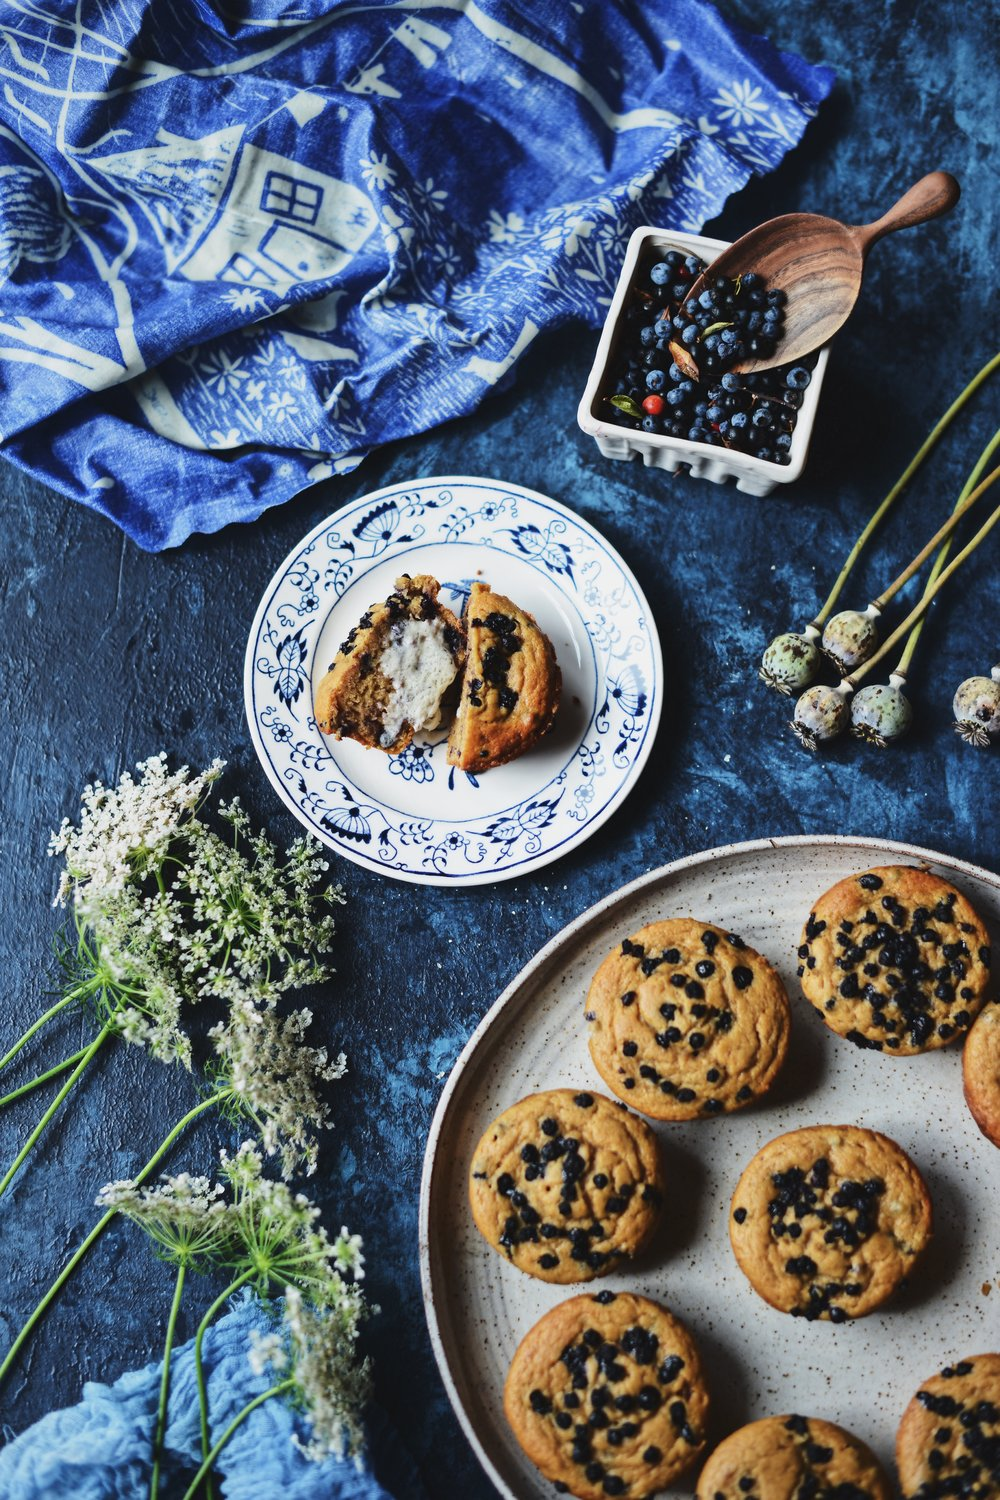 Fare Isle | Vegan Wild Blueberry & Huckleberry Muffins